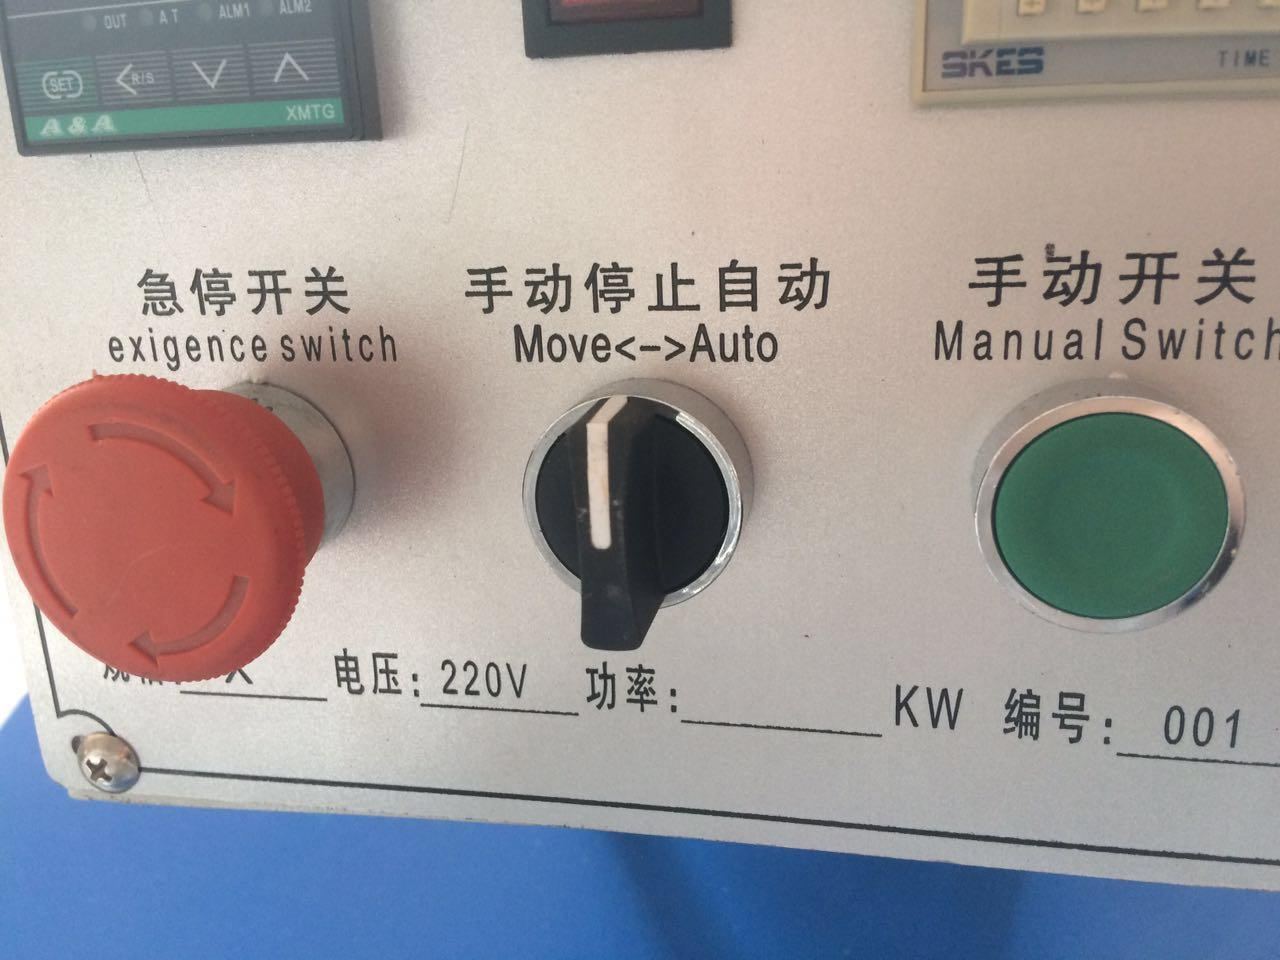 Exigence switch for automatic heat press machine, Red Mushroom Emergency Stop Push Button Switch For Automatic Control Electric Circuits